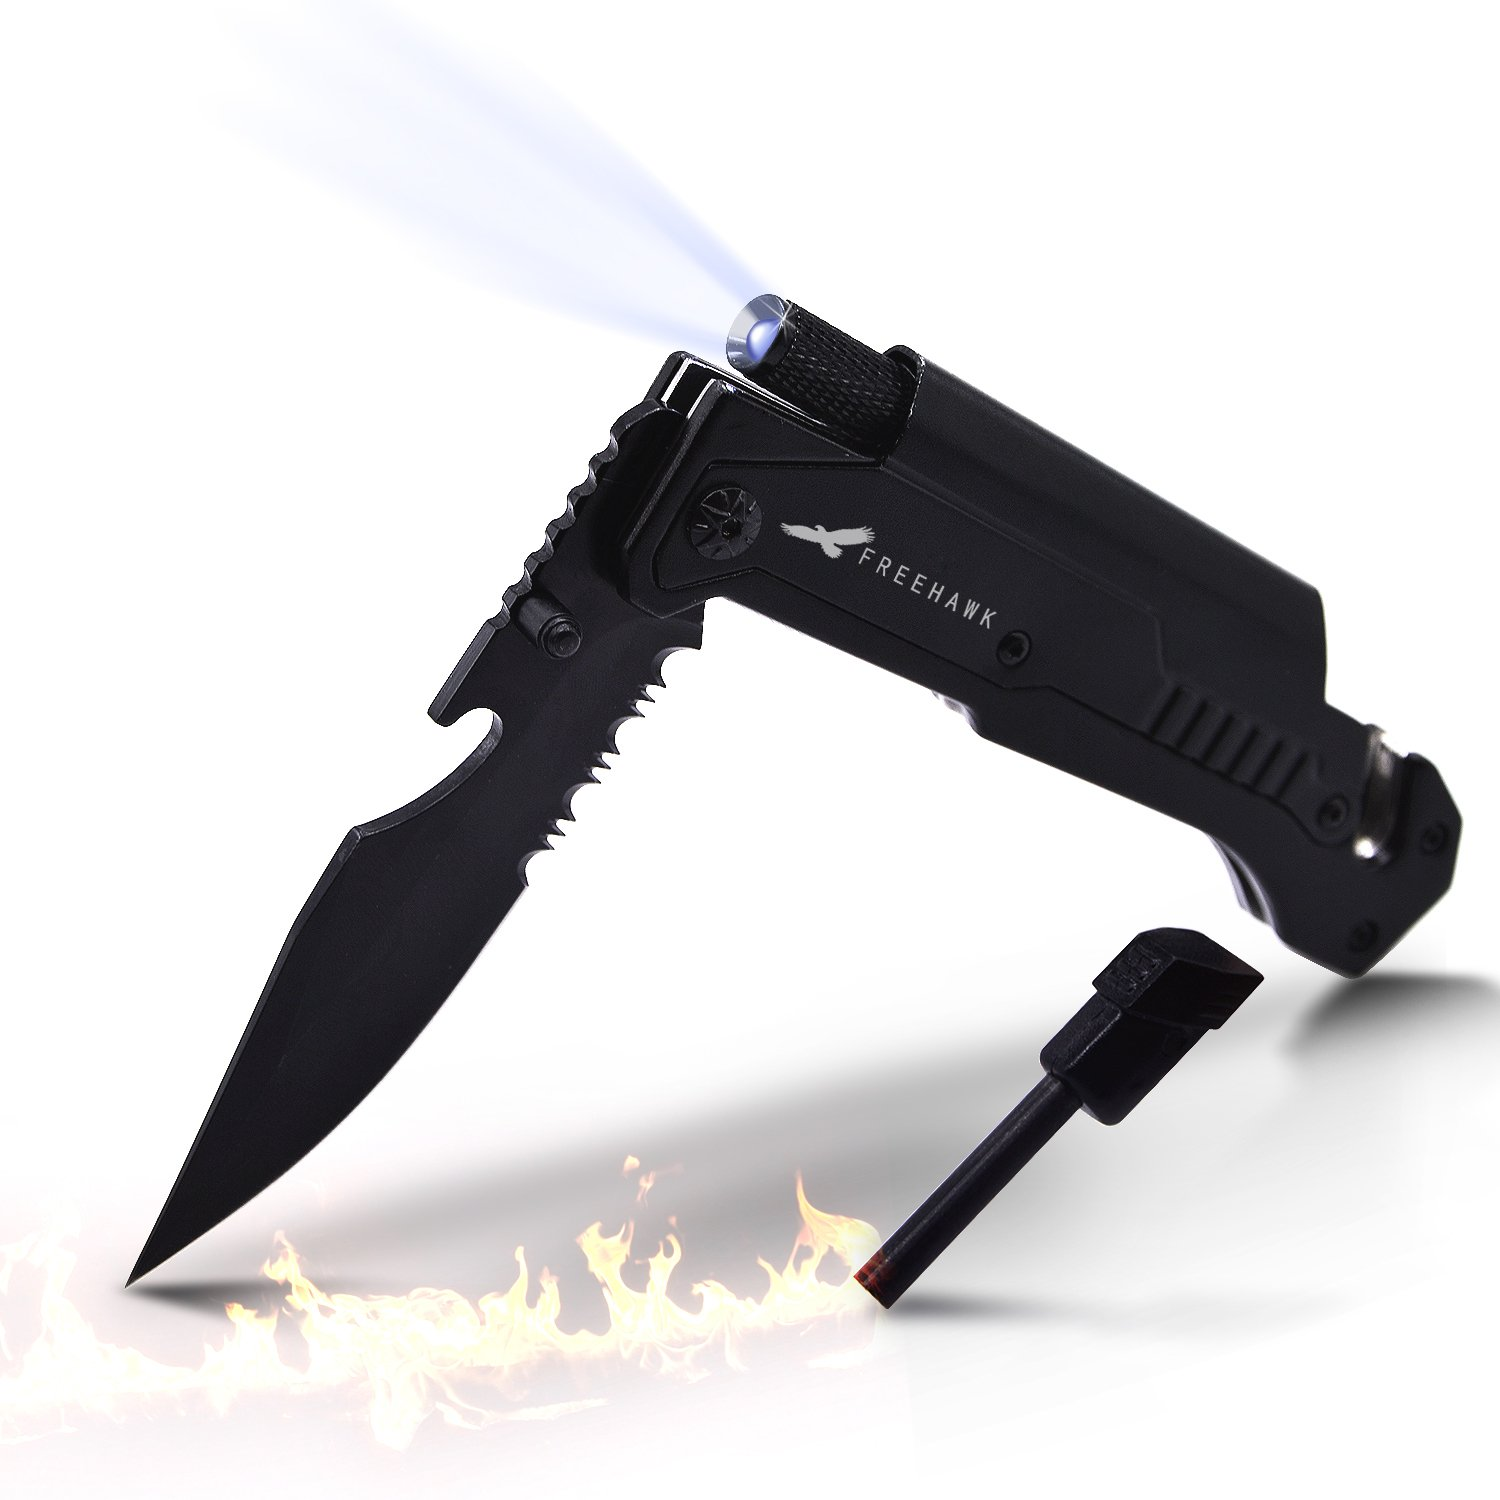 Freehawk Multifunctional Potable Outdoor Knife Survival Tactical Knife Outdoor Folding Knife with Led Light, Flintstone for Outdoor Adventure, Camping, Household